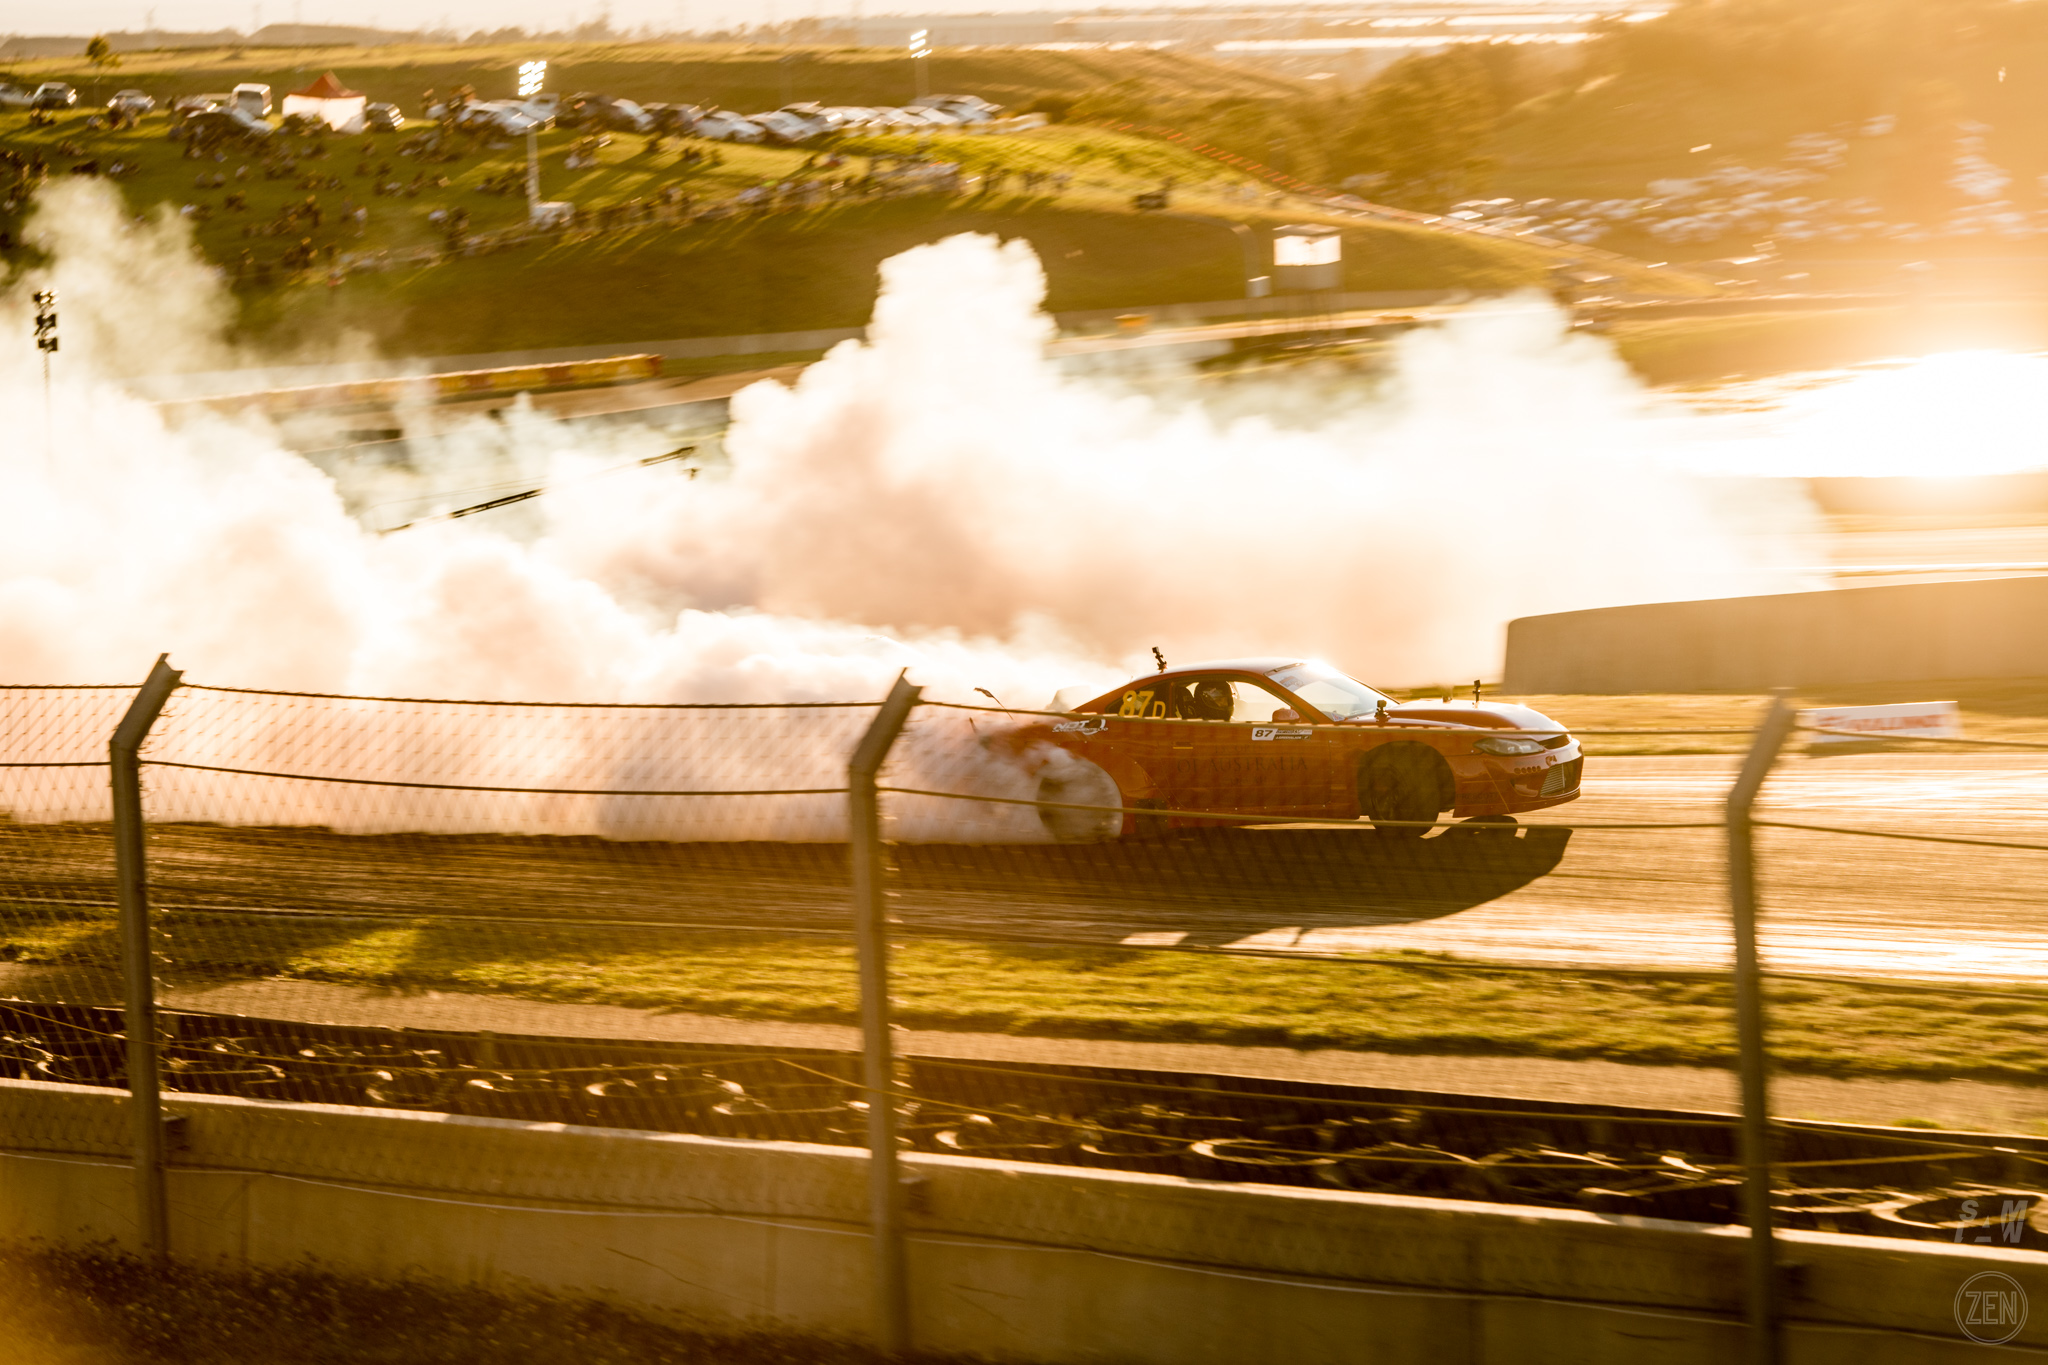 2019-10-18 - WTAC Day 01 065